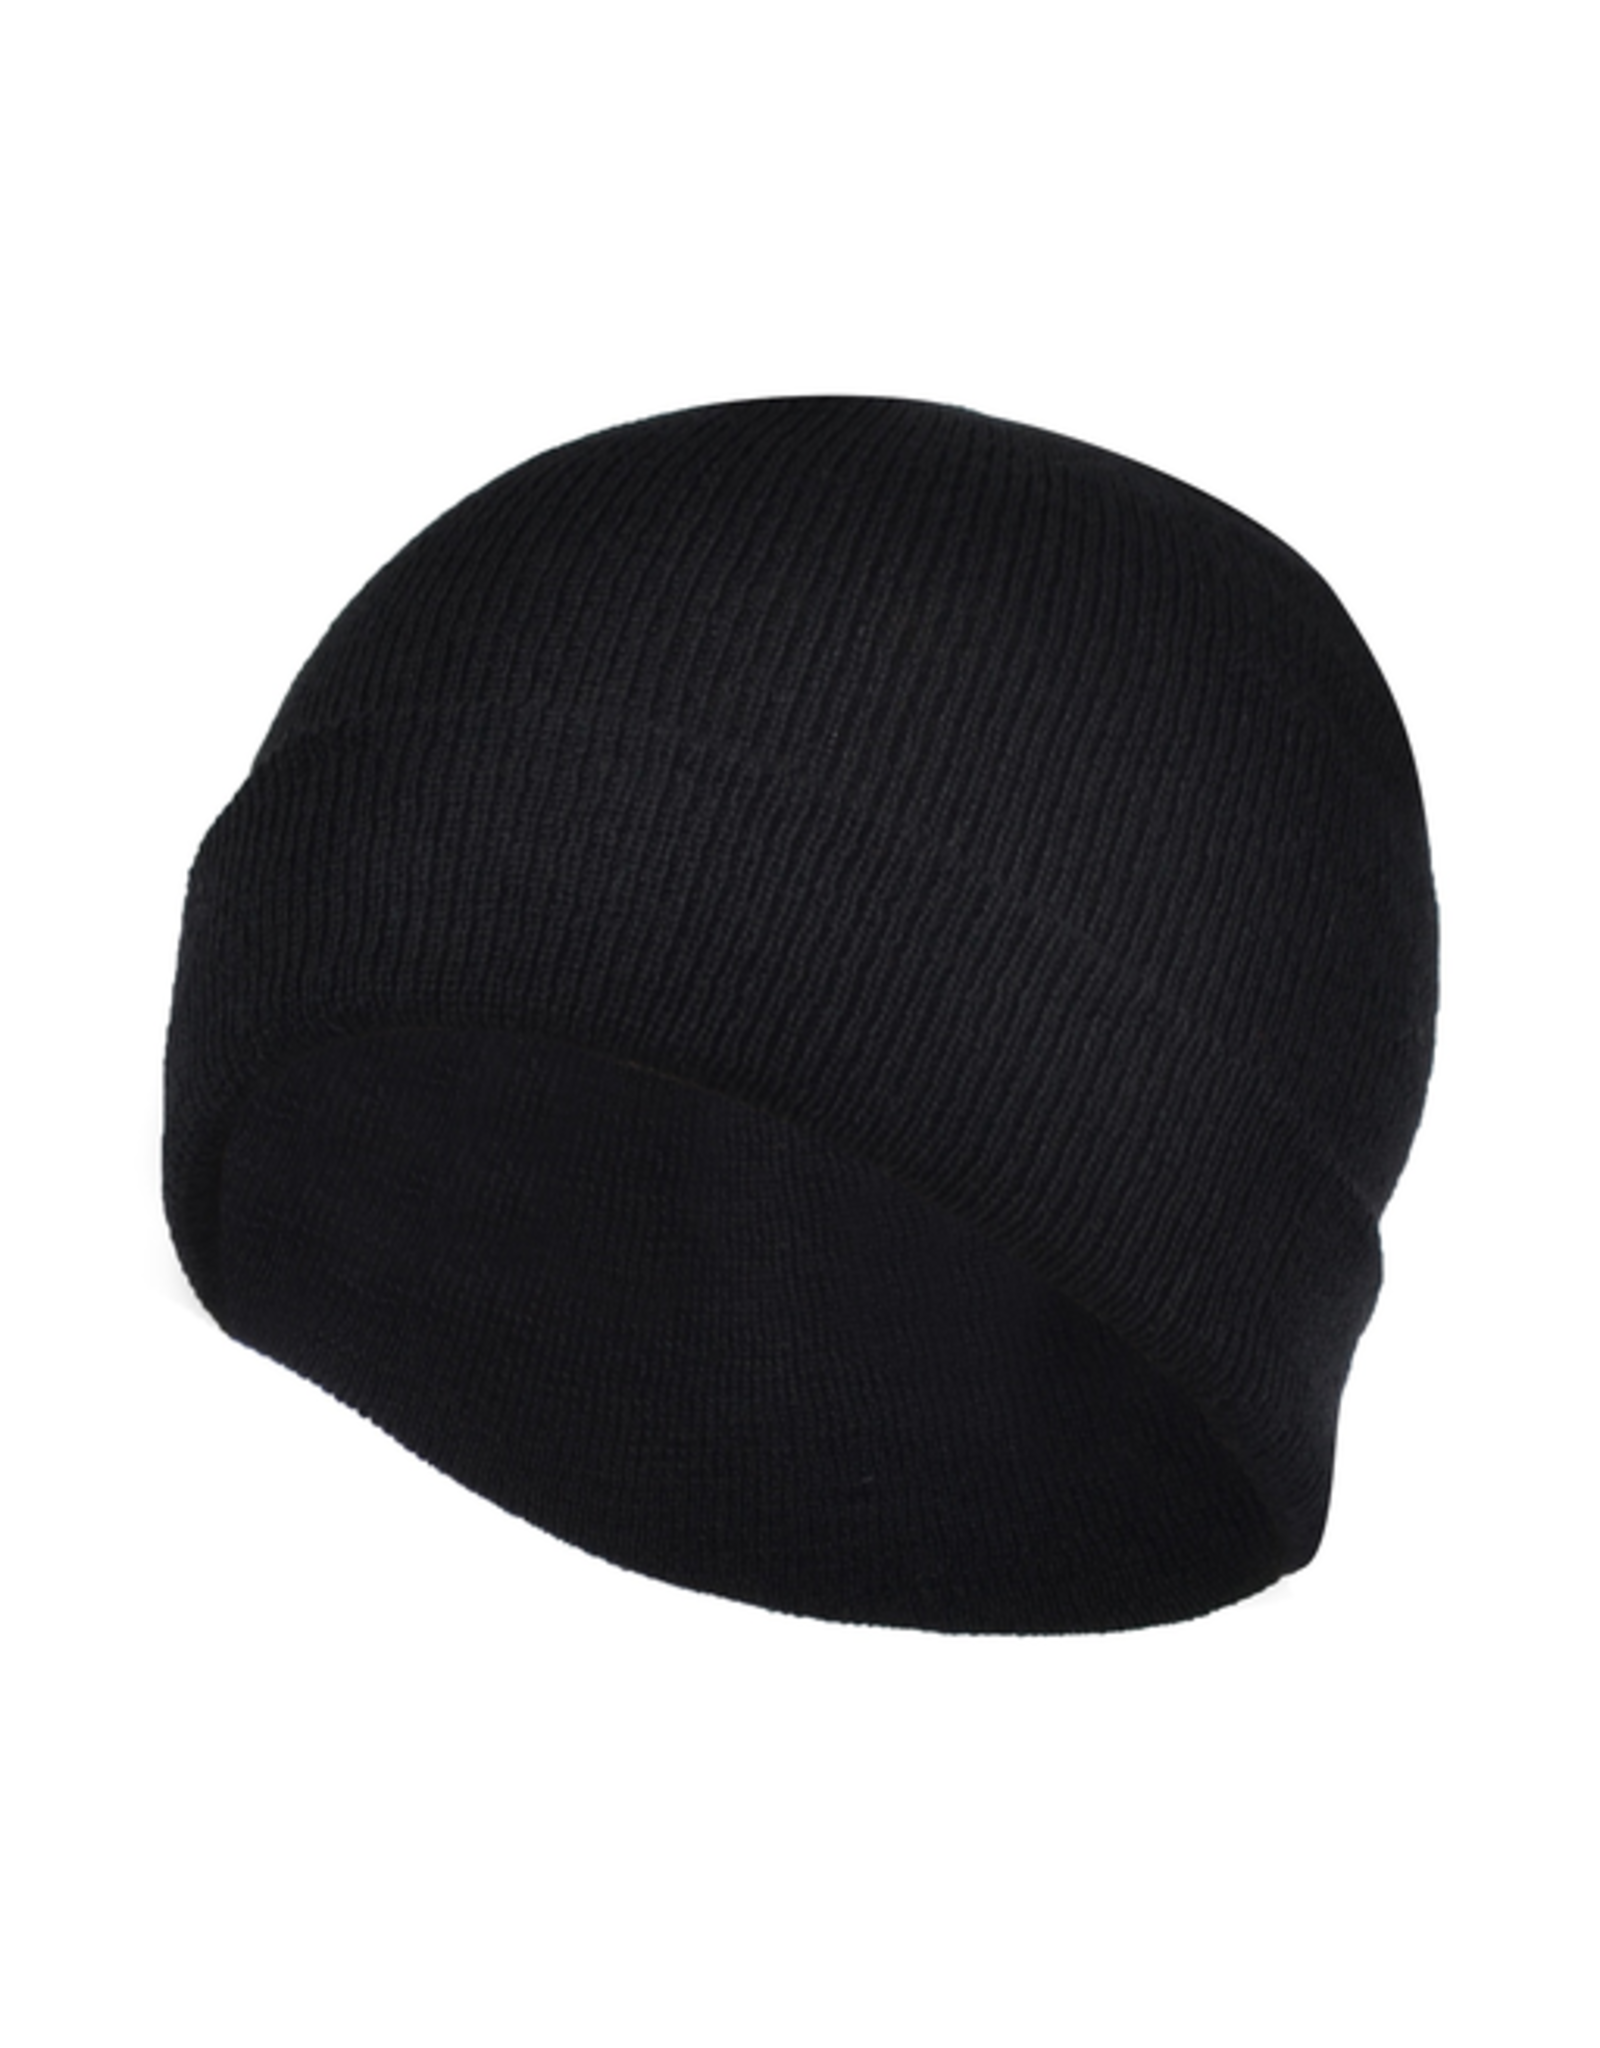 GKS GKS Wool Tuque